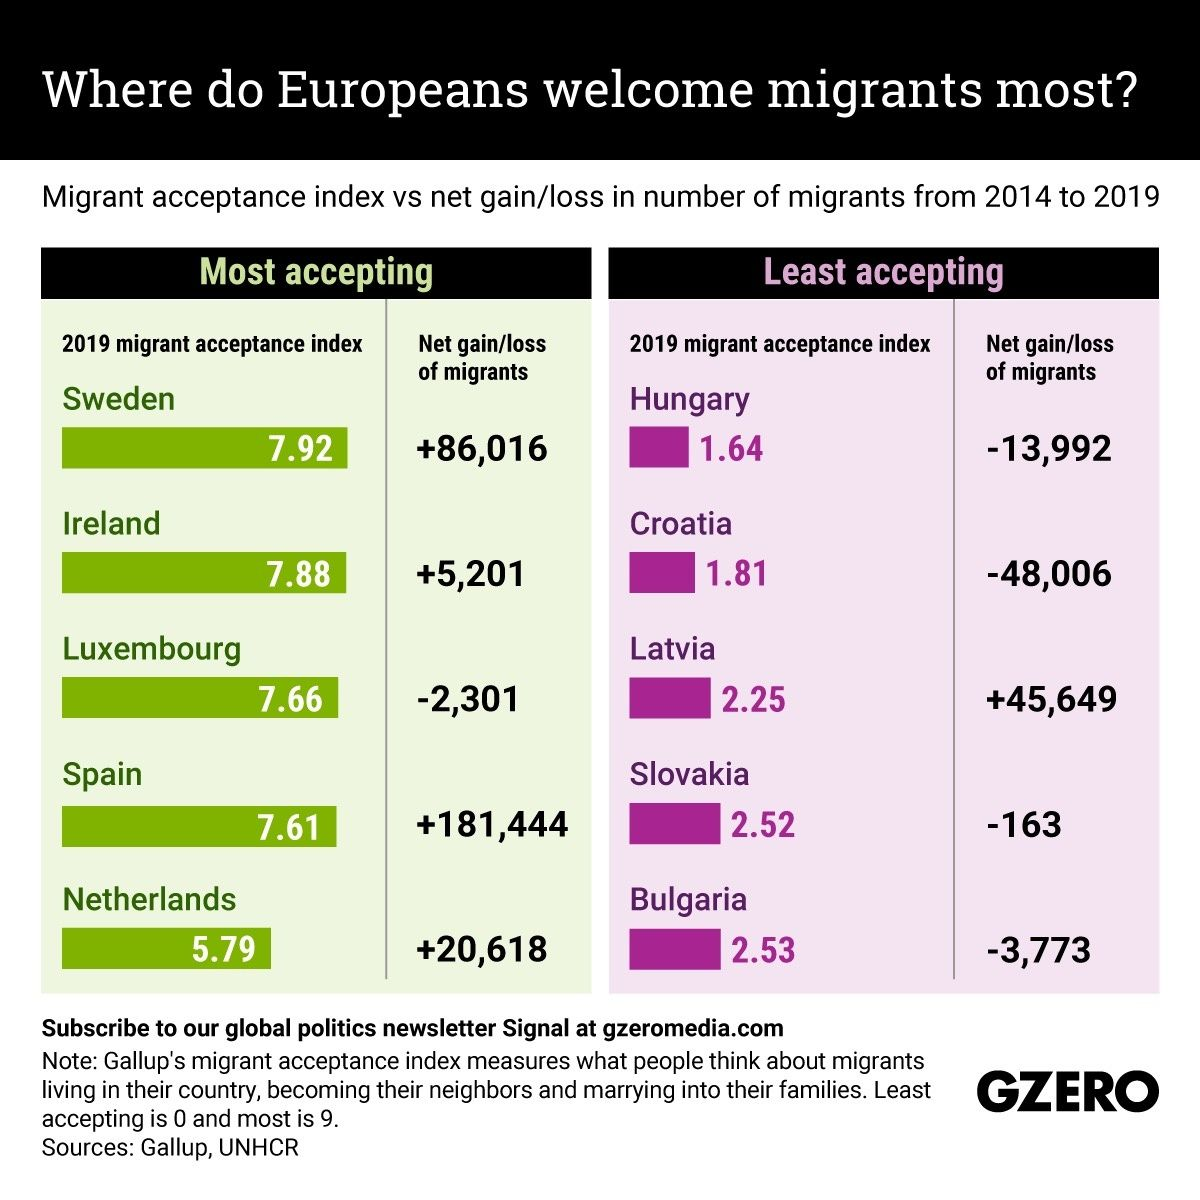 The Graphic Truth: Where do Europeans welcome migrants most?